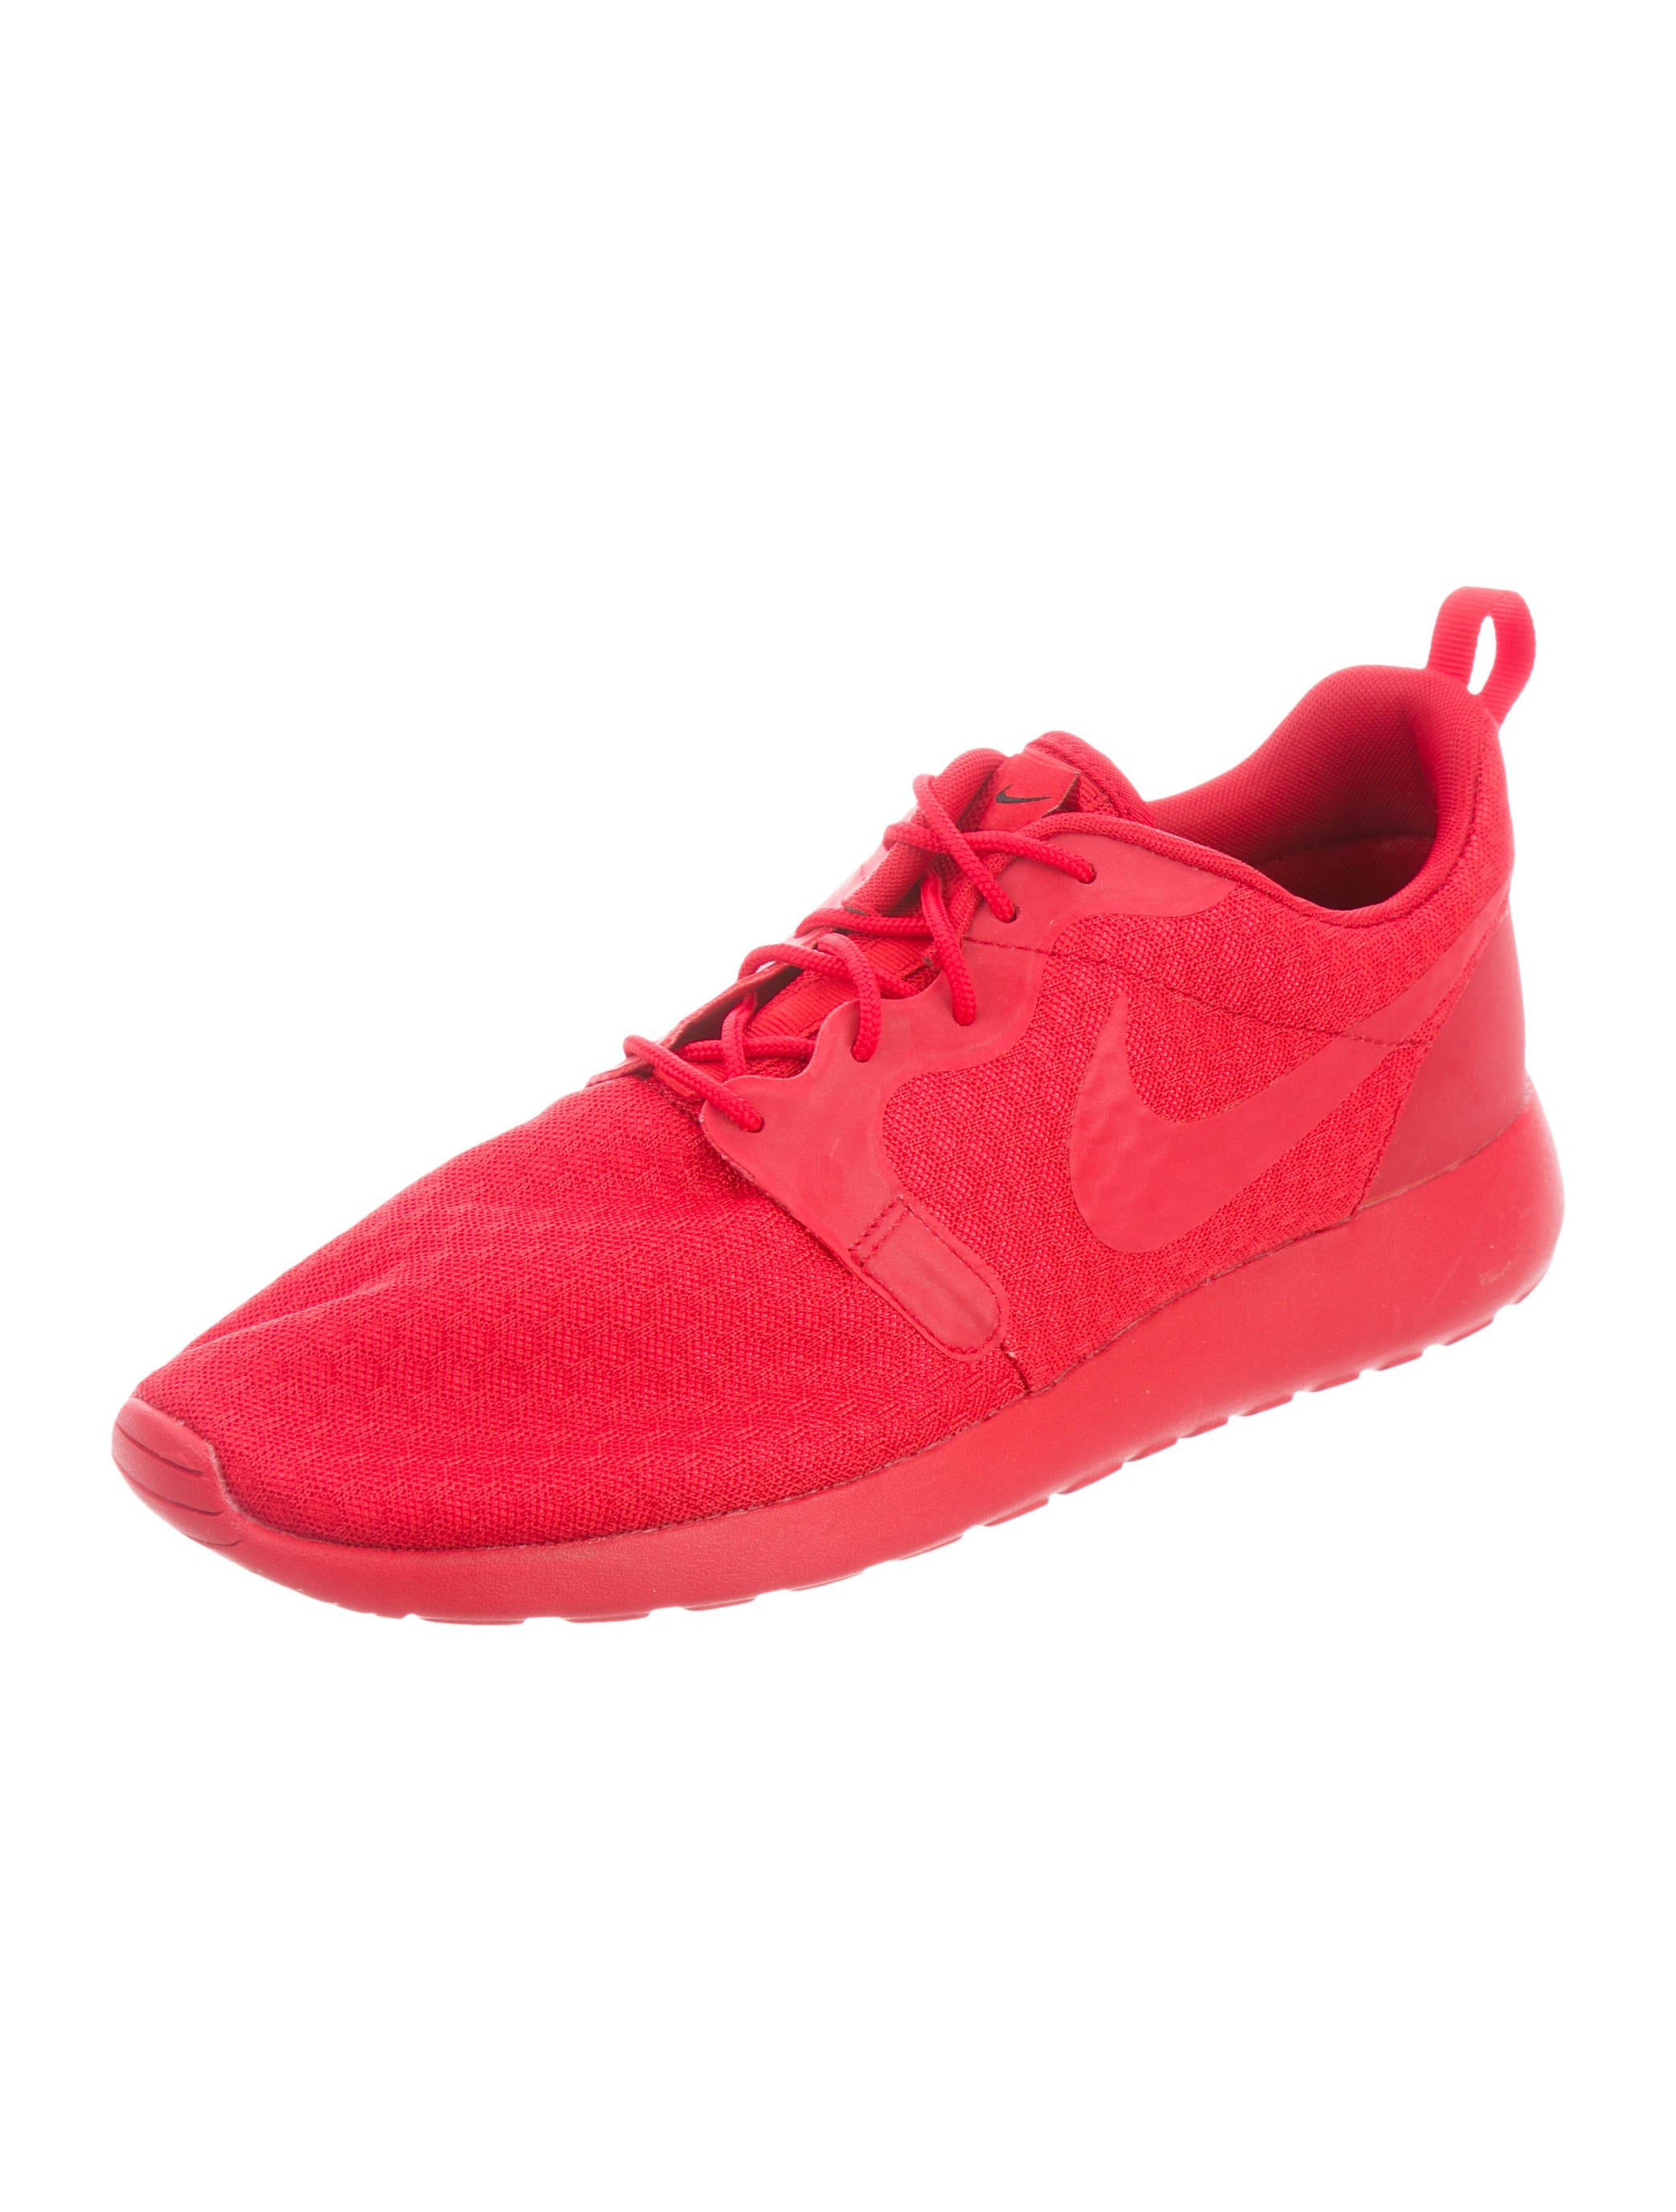 reputable site 9bc1e f1533 nike hyperfuse tag